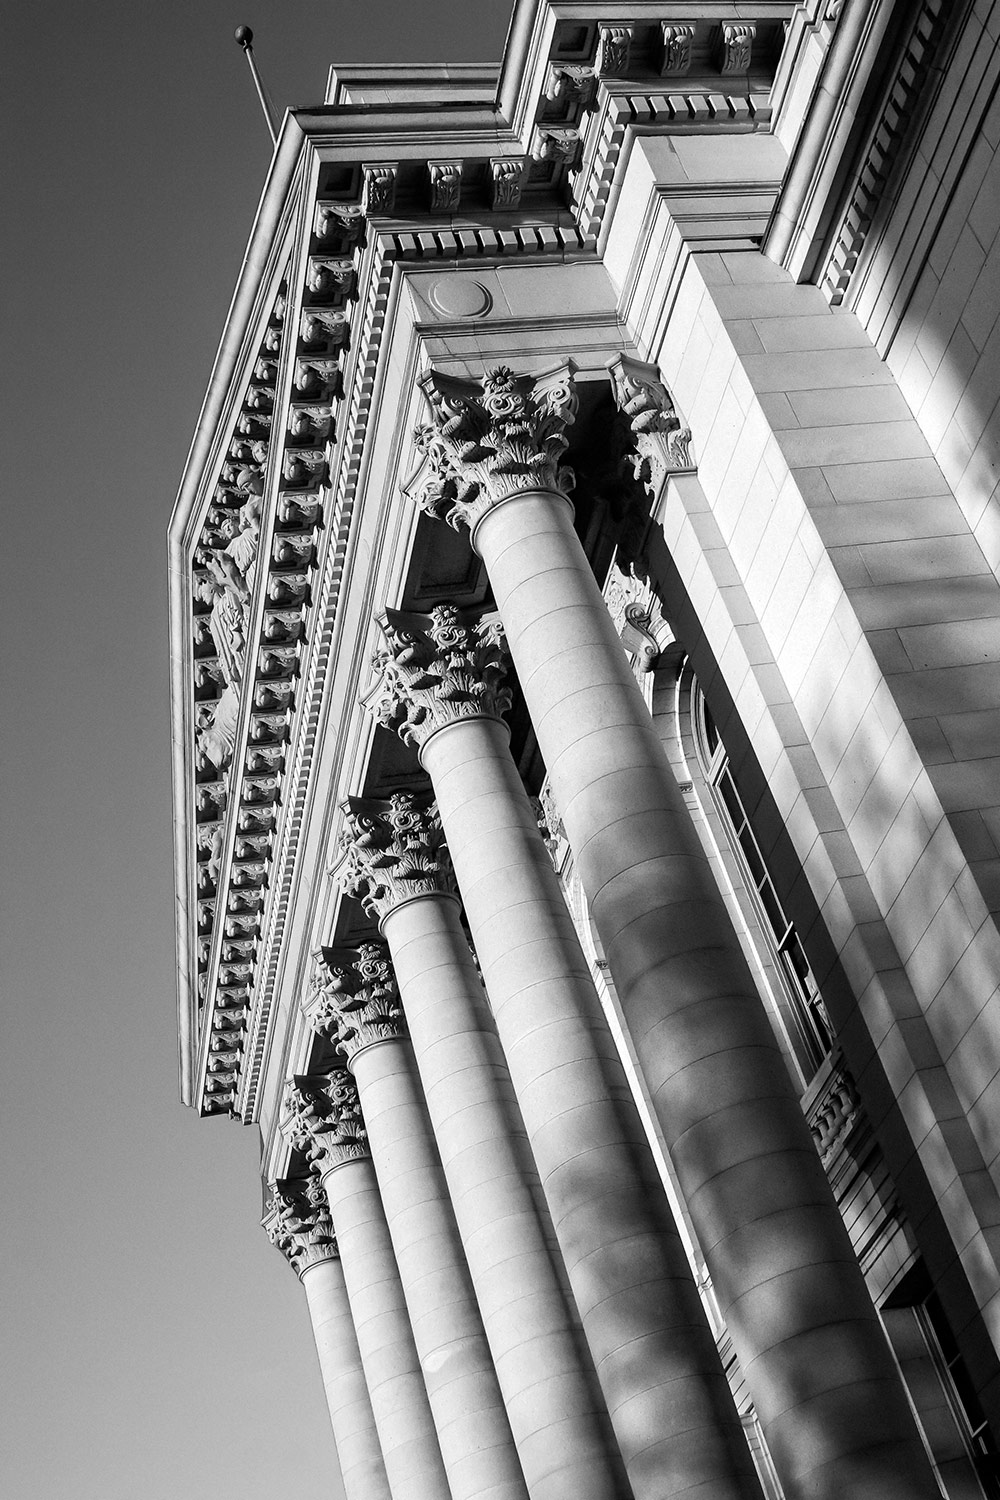 A vertical view of the columns on the Wisconsin State Capitol in Madison, Wisconsin.   → Buy a Print